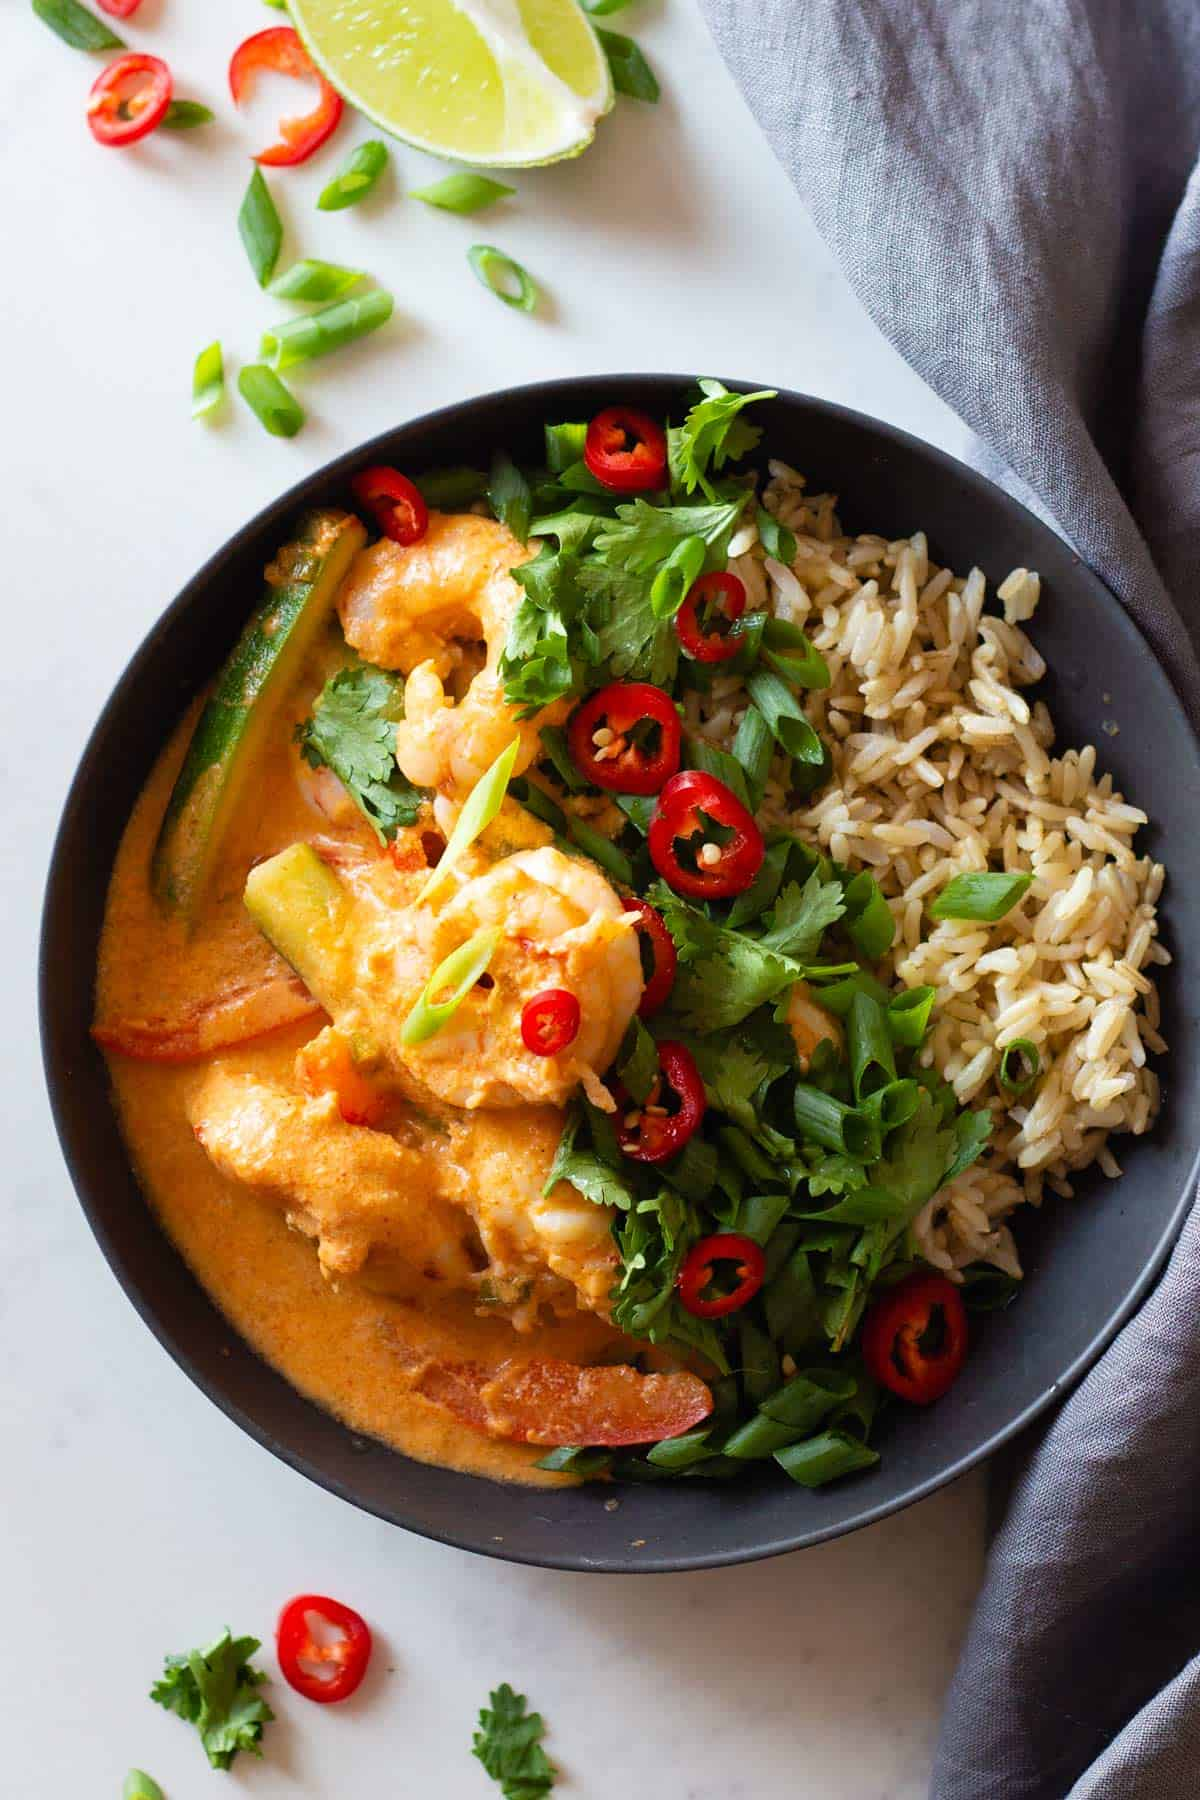 Coconut Shrimp Curry and brown rice in a grey bowl topped with herbs and chili.